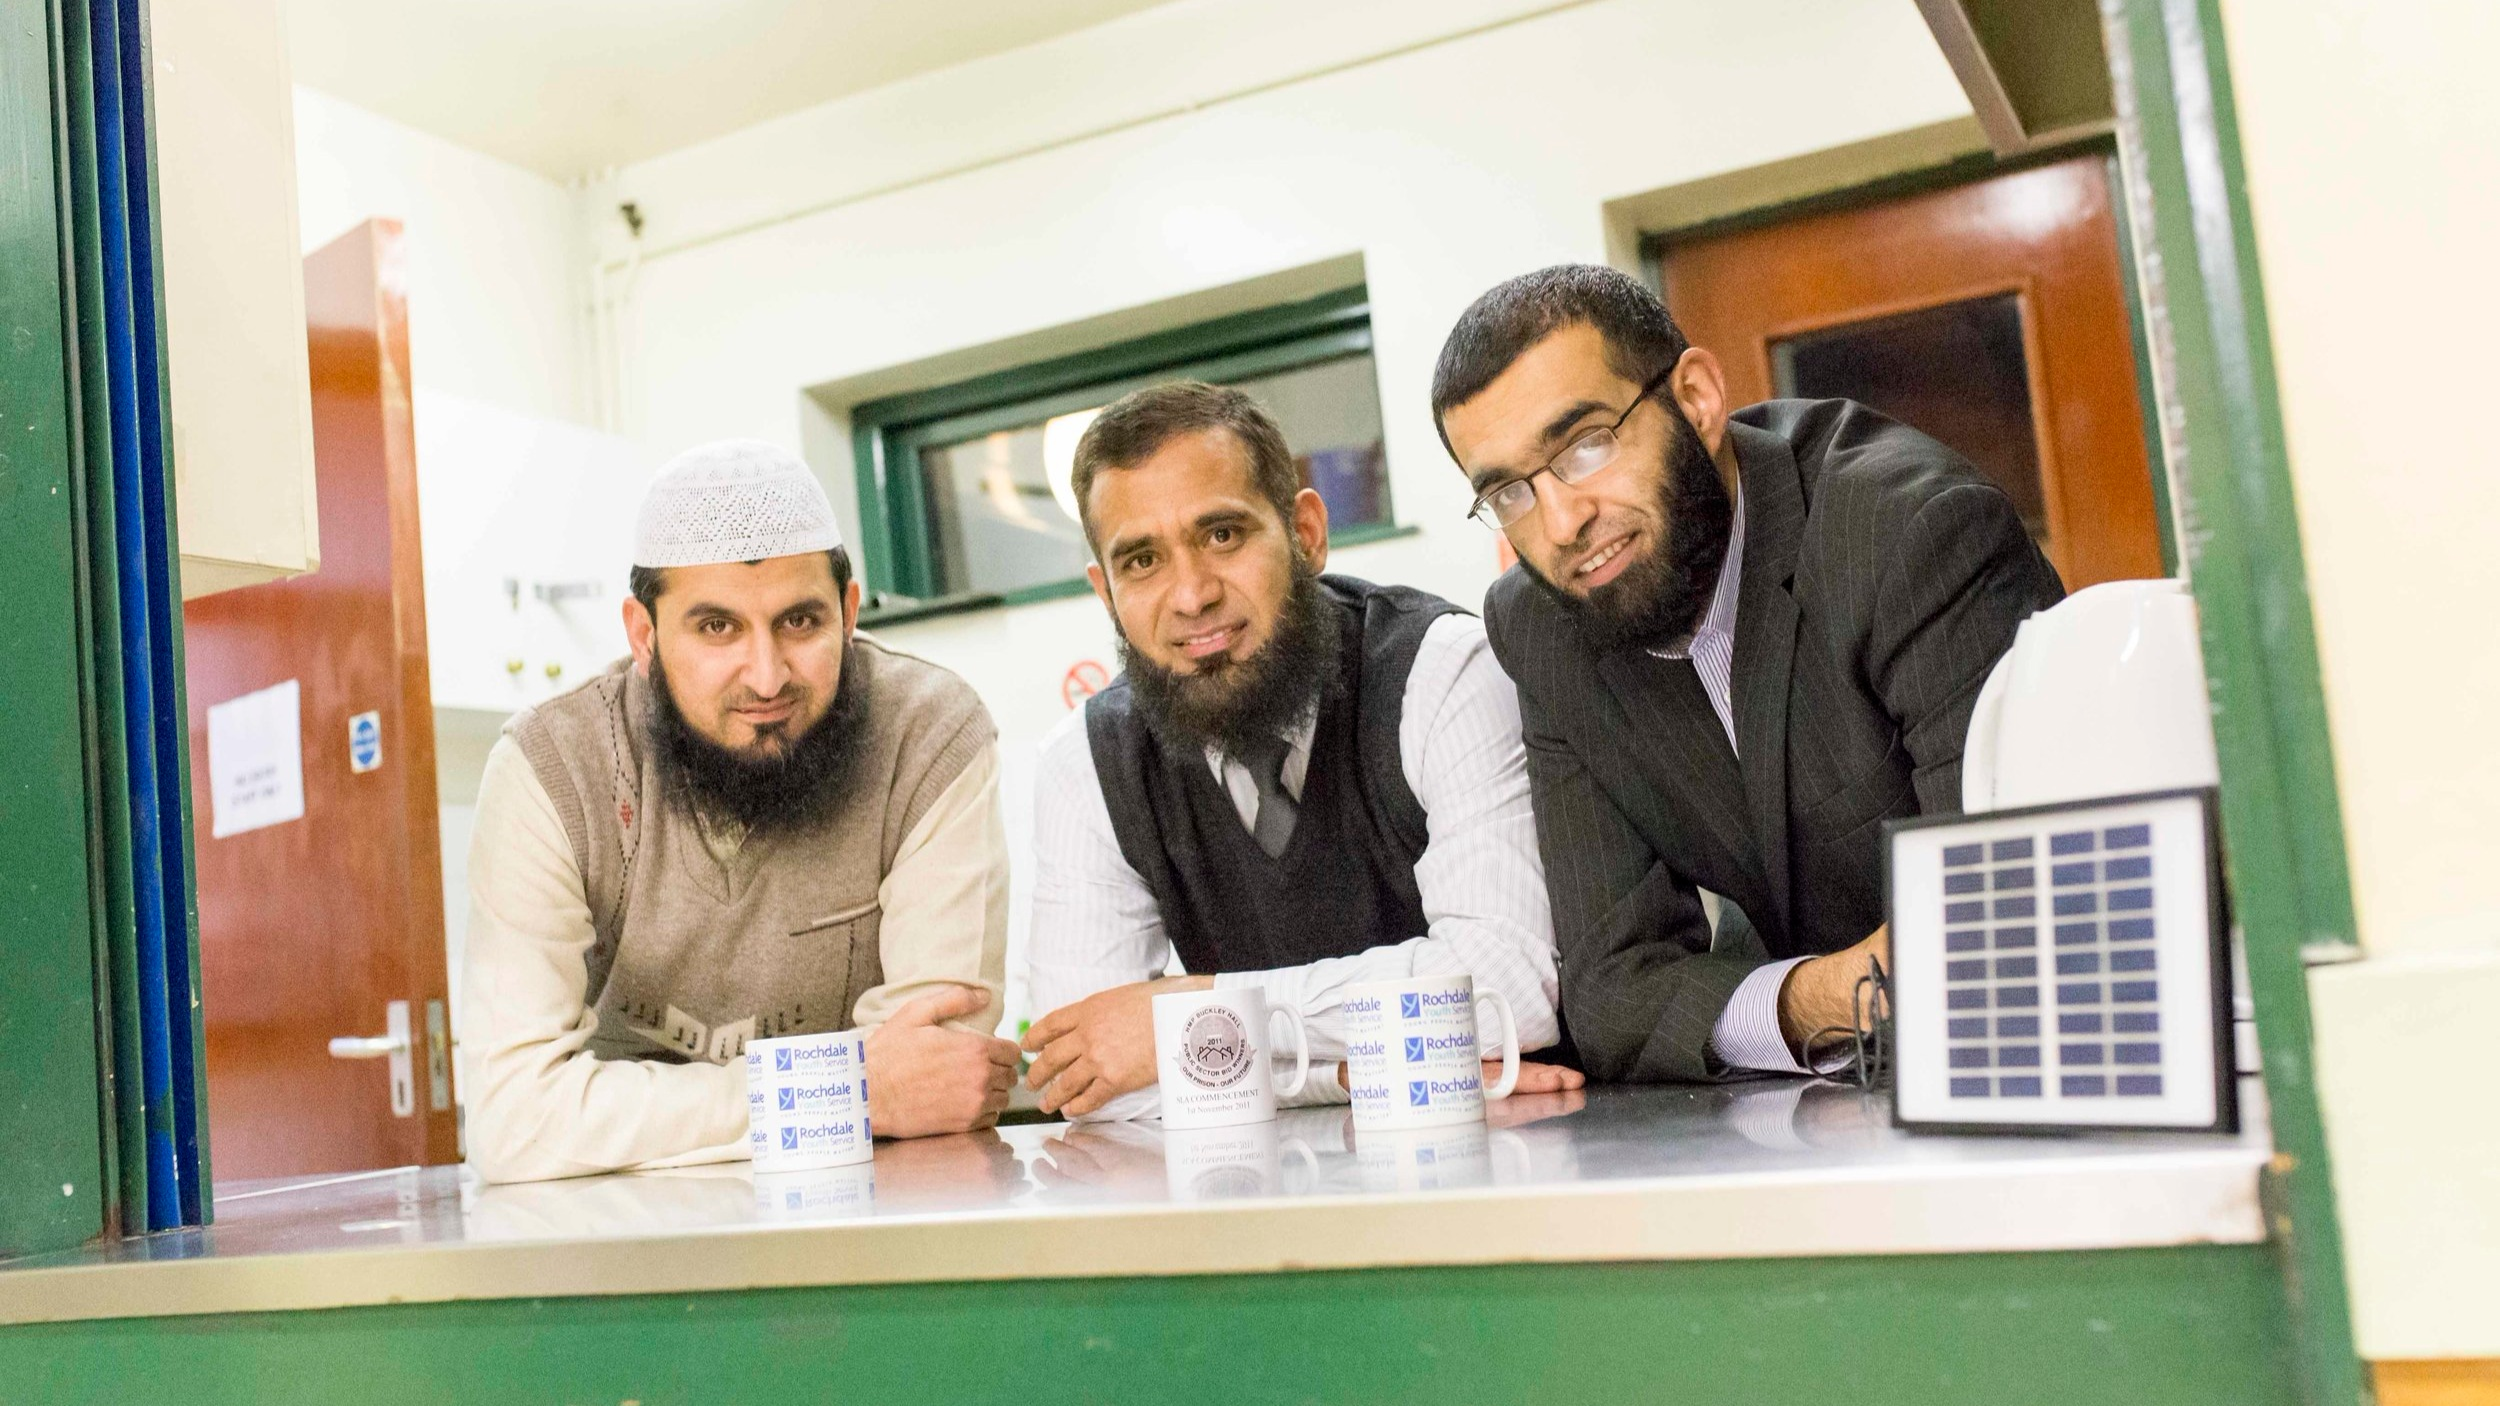 three asian men look over counter in community centre. they each have a mug of tea